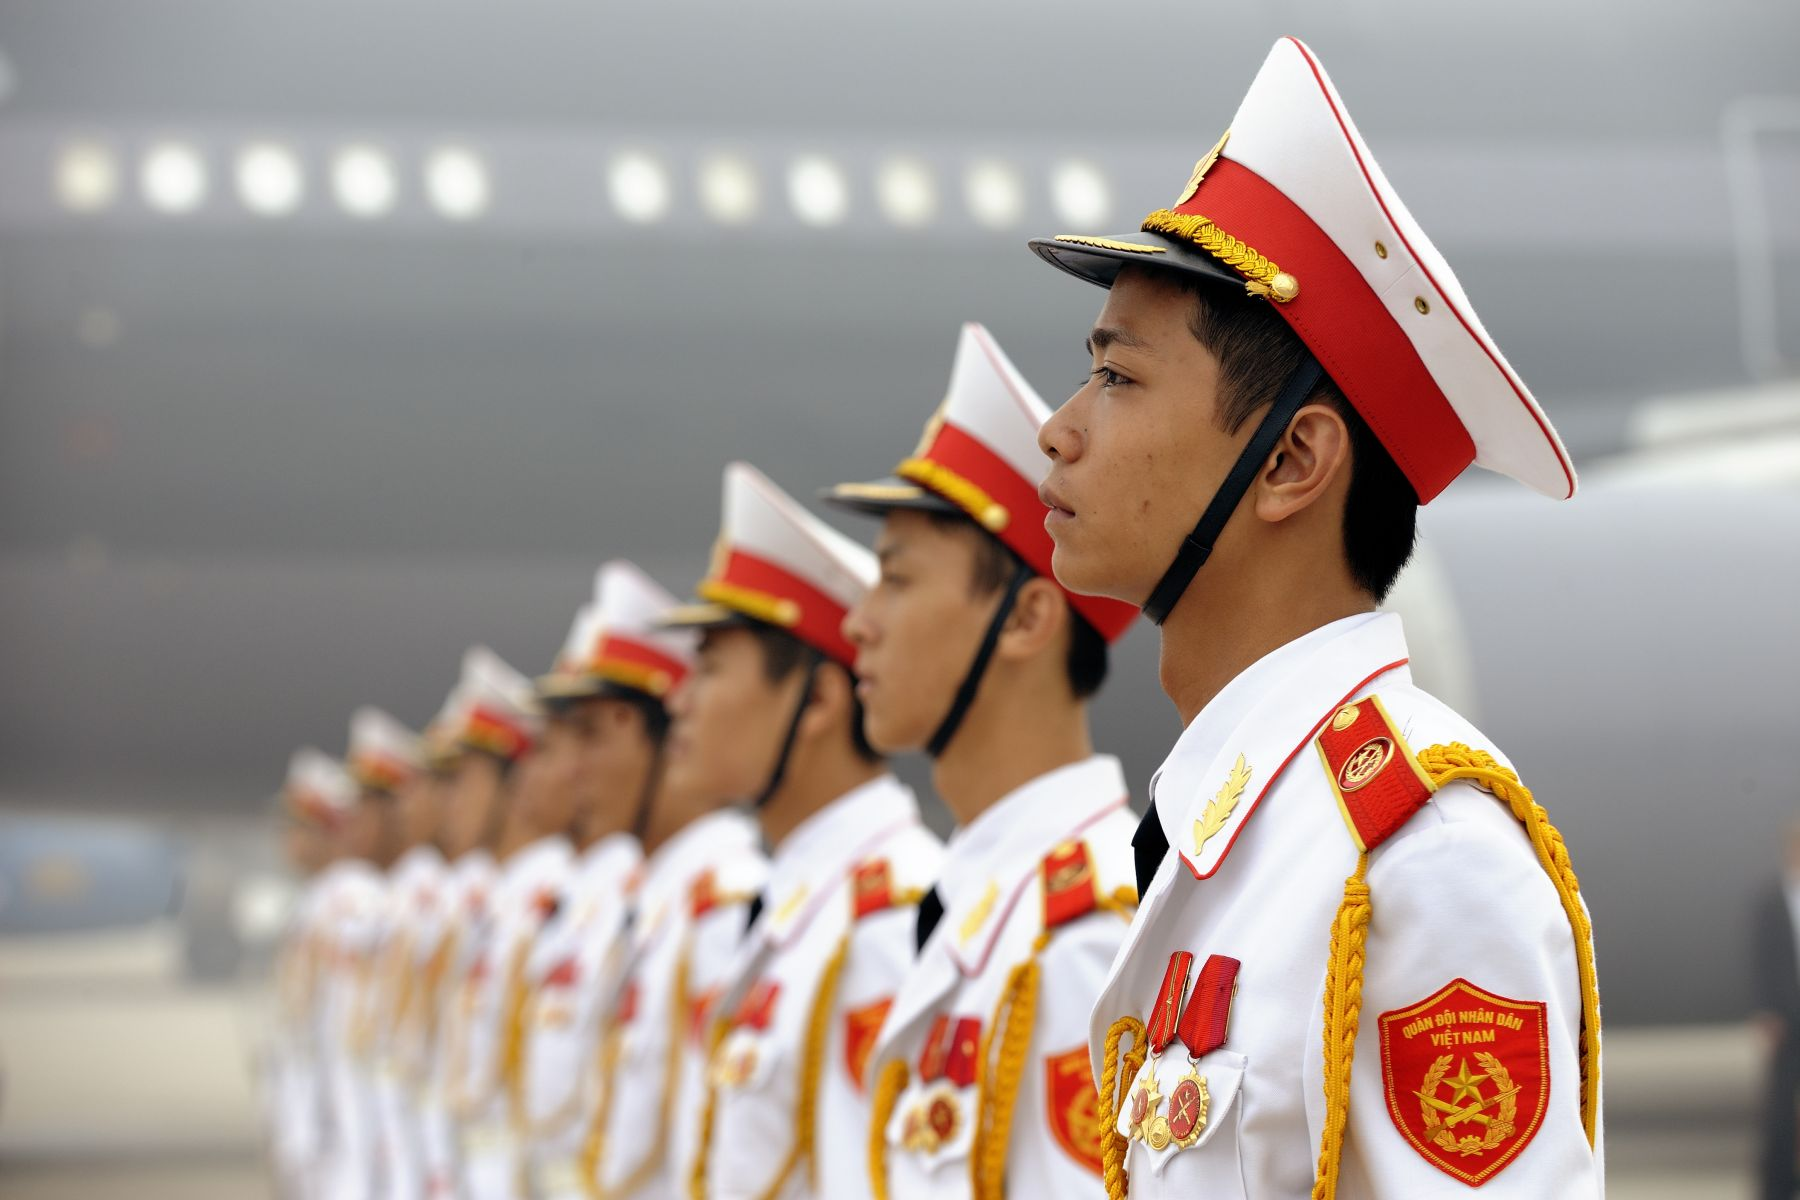 Sentinels stood guard during the official departure from the capital city of Hanoi, Socialist Republic of Vietnam.